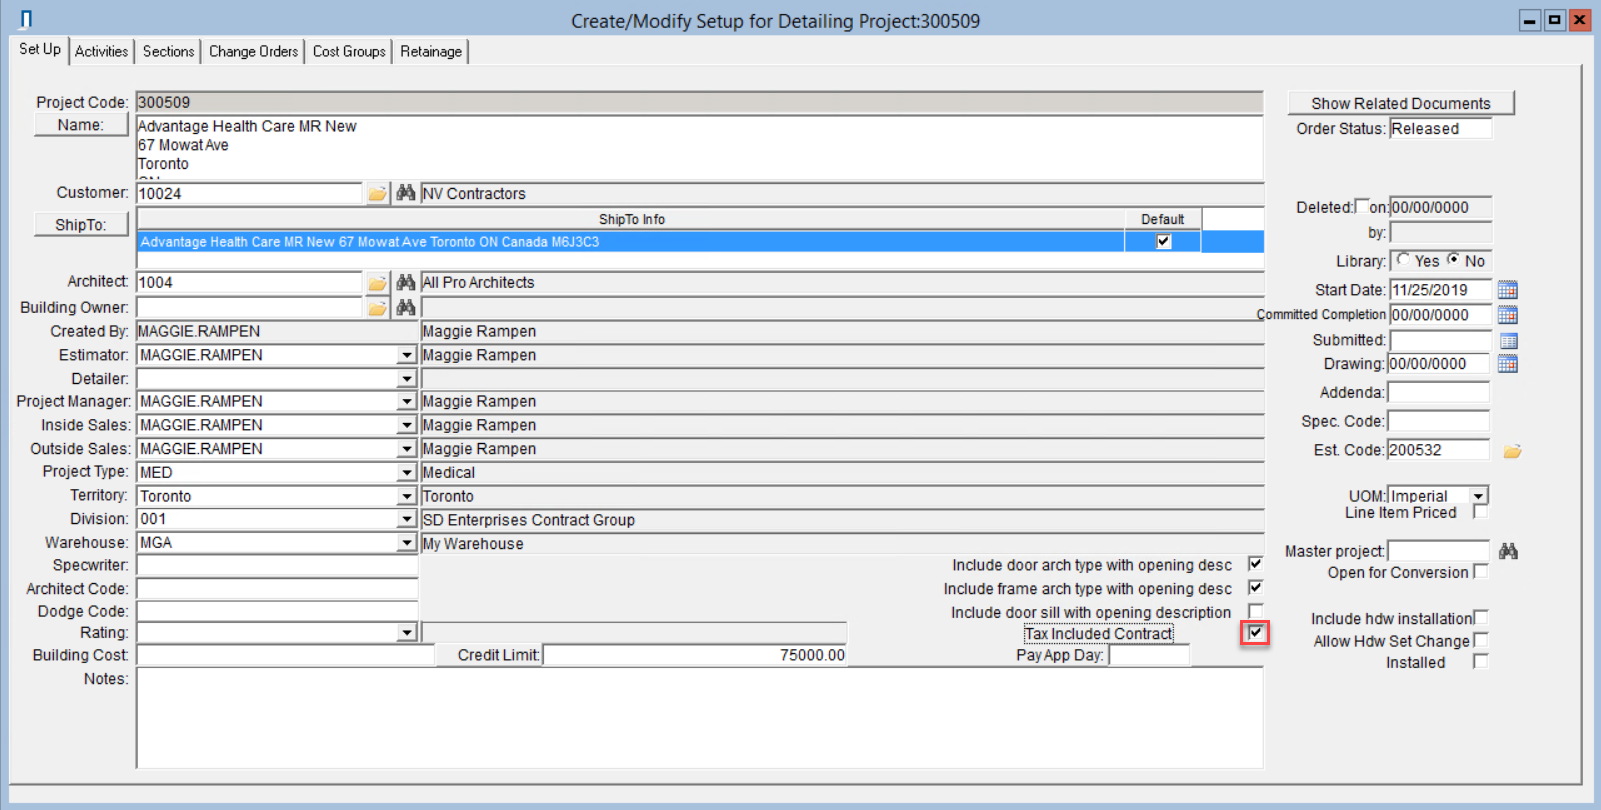 Detailing Project window; shows locatin of Tax Included Contract checkbox.